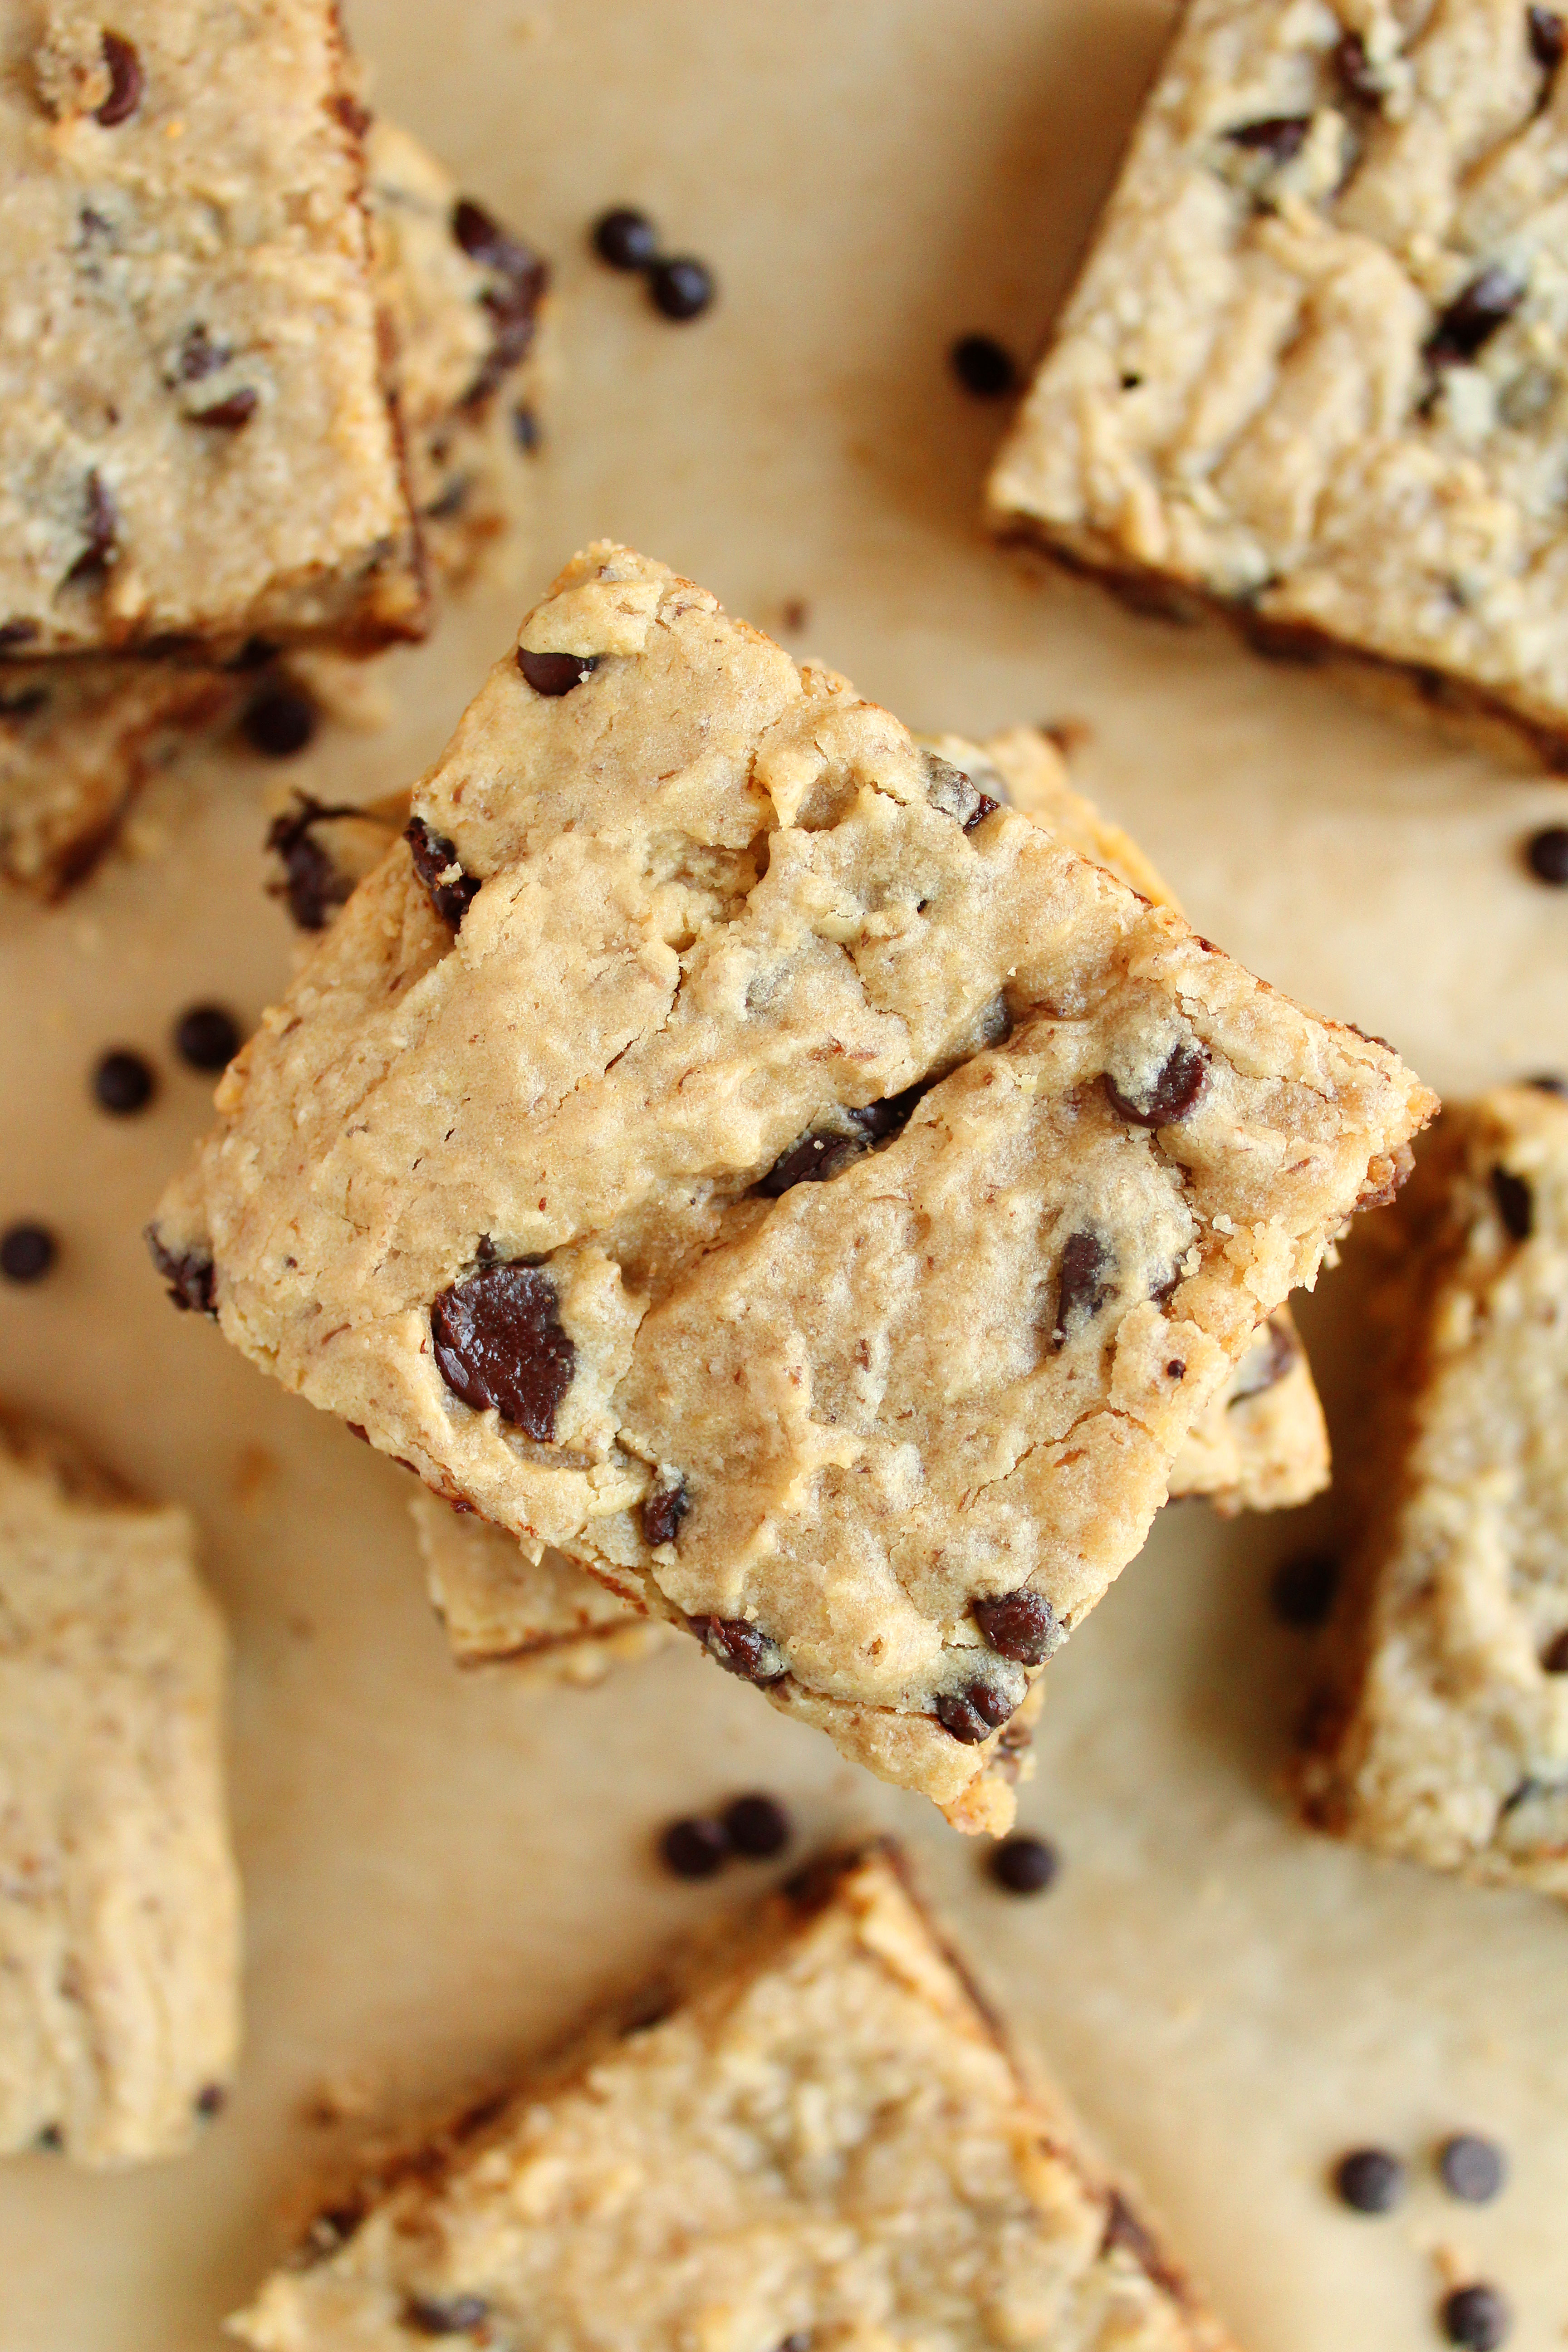 ... delicious, completely vegan + gluten free, and refined sugar free too